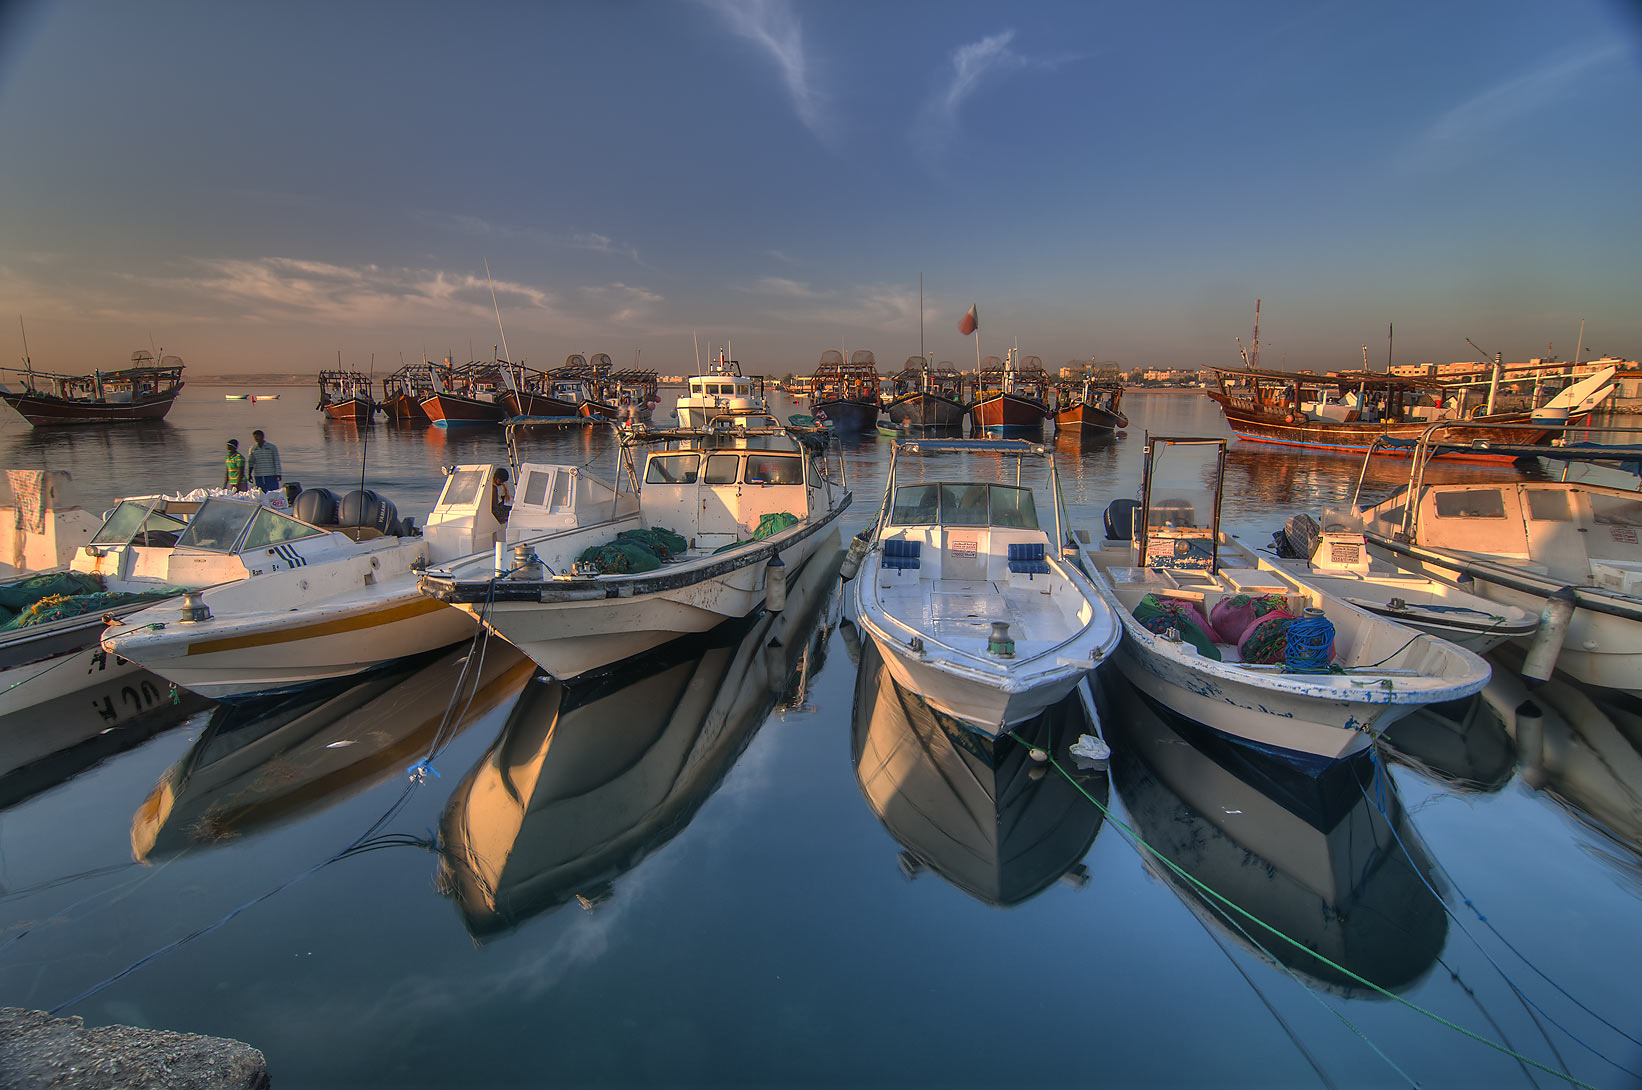 Rows of fishing boats in harbor in Al Wakra at sunrise, view from a pier. Qatar